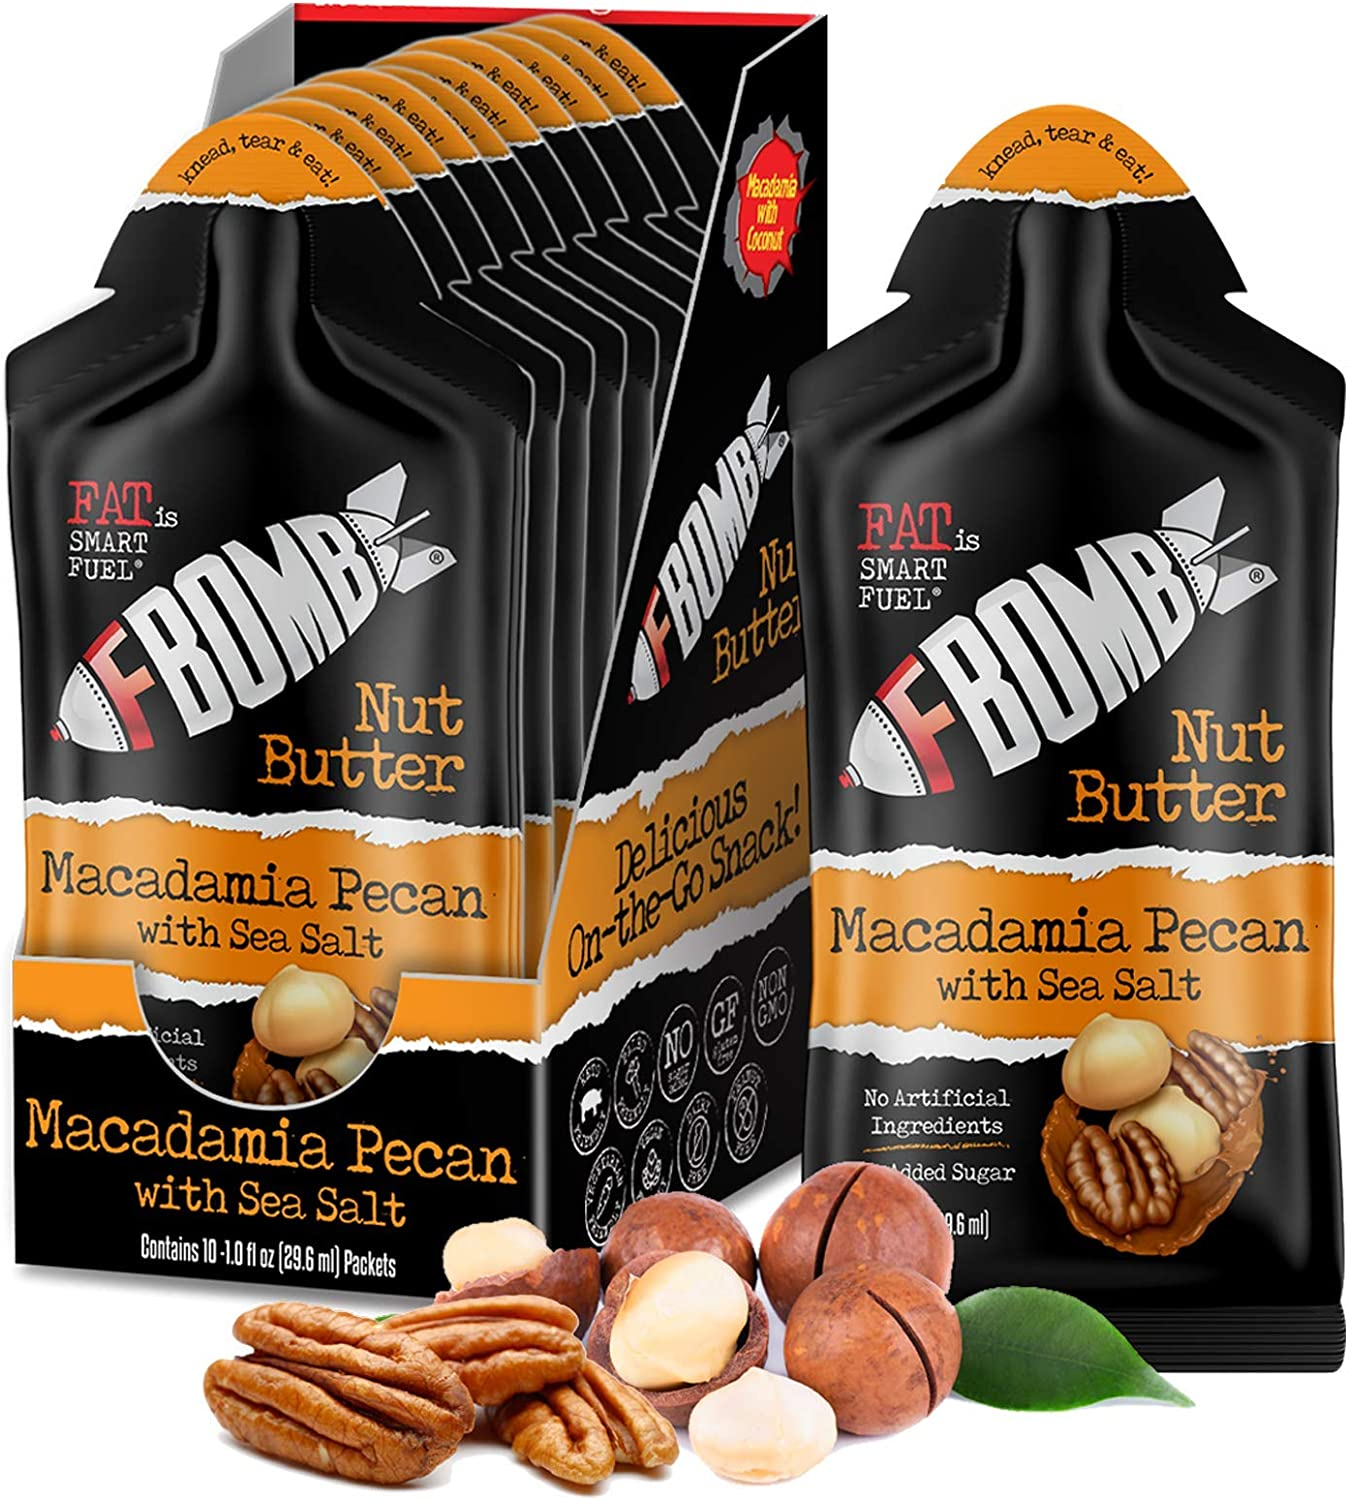 FBOMB Macadamia Nut Butter, Keto Fat Bombs: All-Natural Energy from Healthy Fats | Low Carb, Paleo, Keto Snacks with No Added Sugar | Macadamia & Pecan - 1 oz Packets